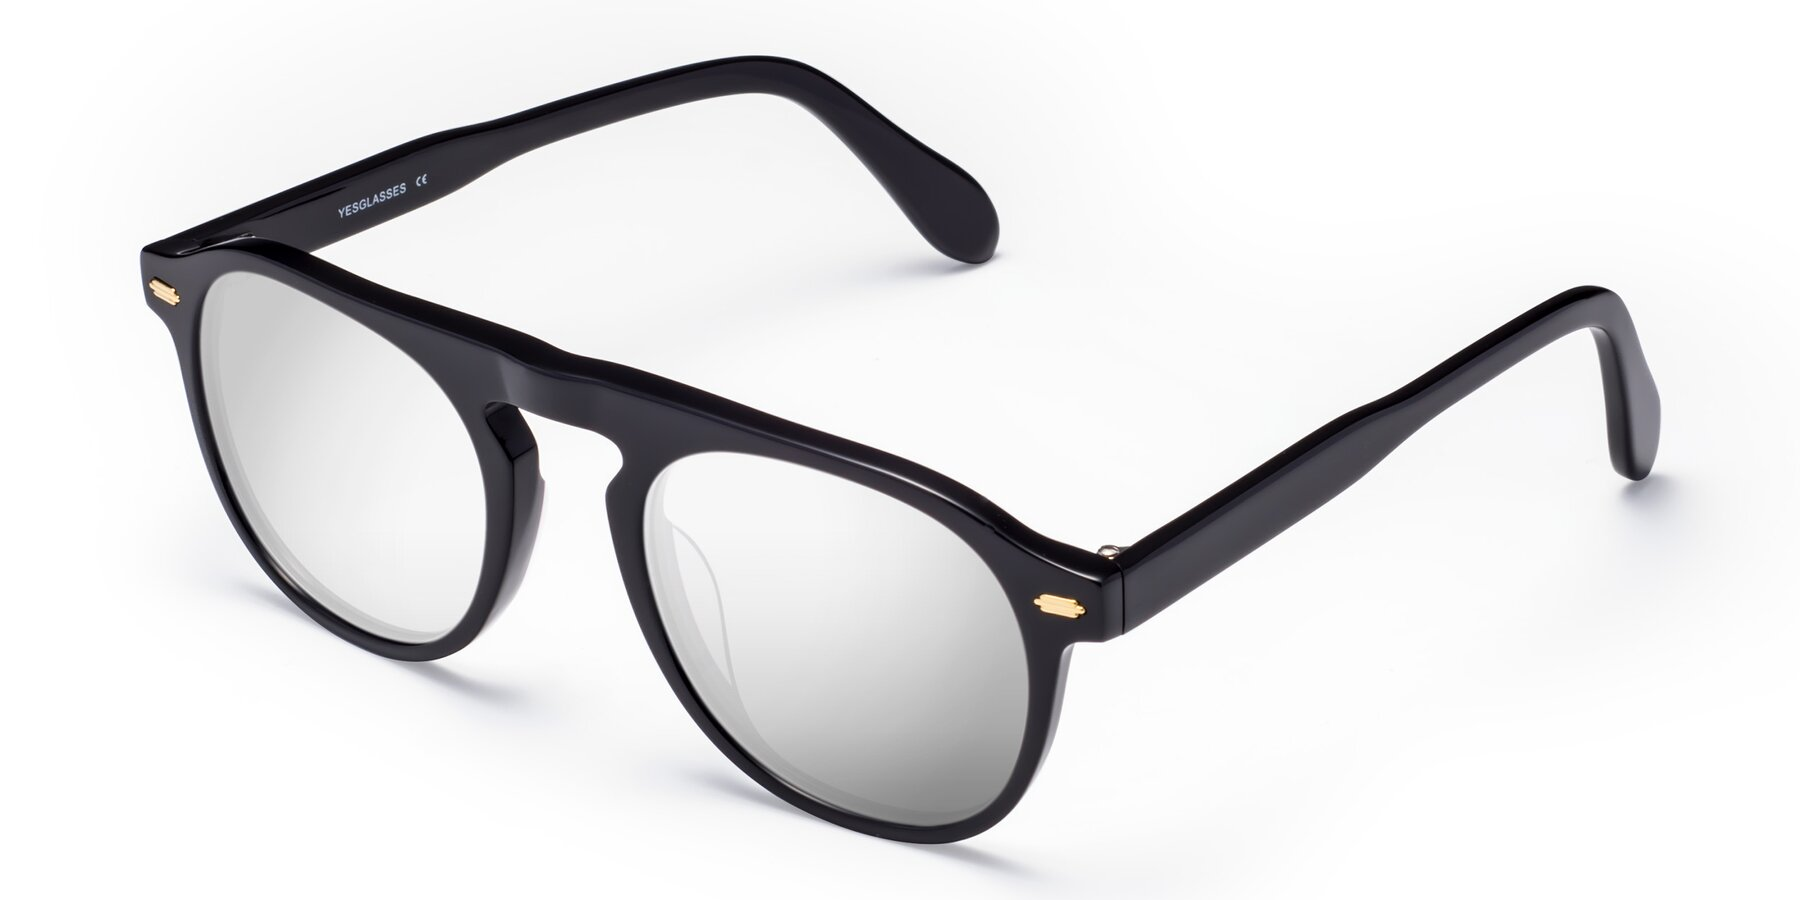 Angle of Mufasa in Black with Silver Mirrored Lenses